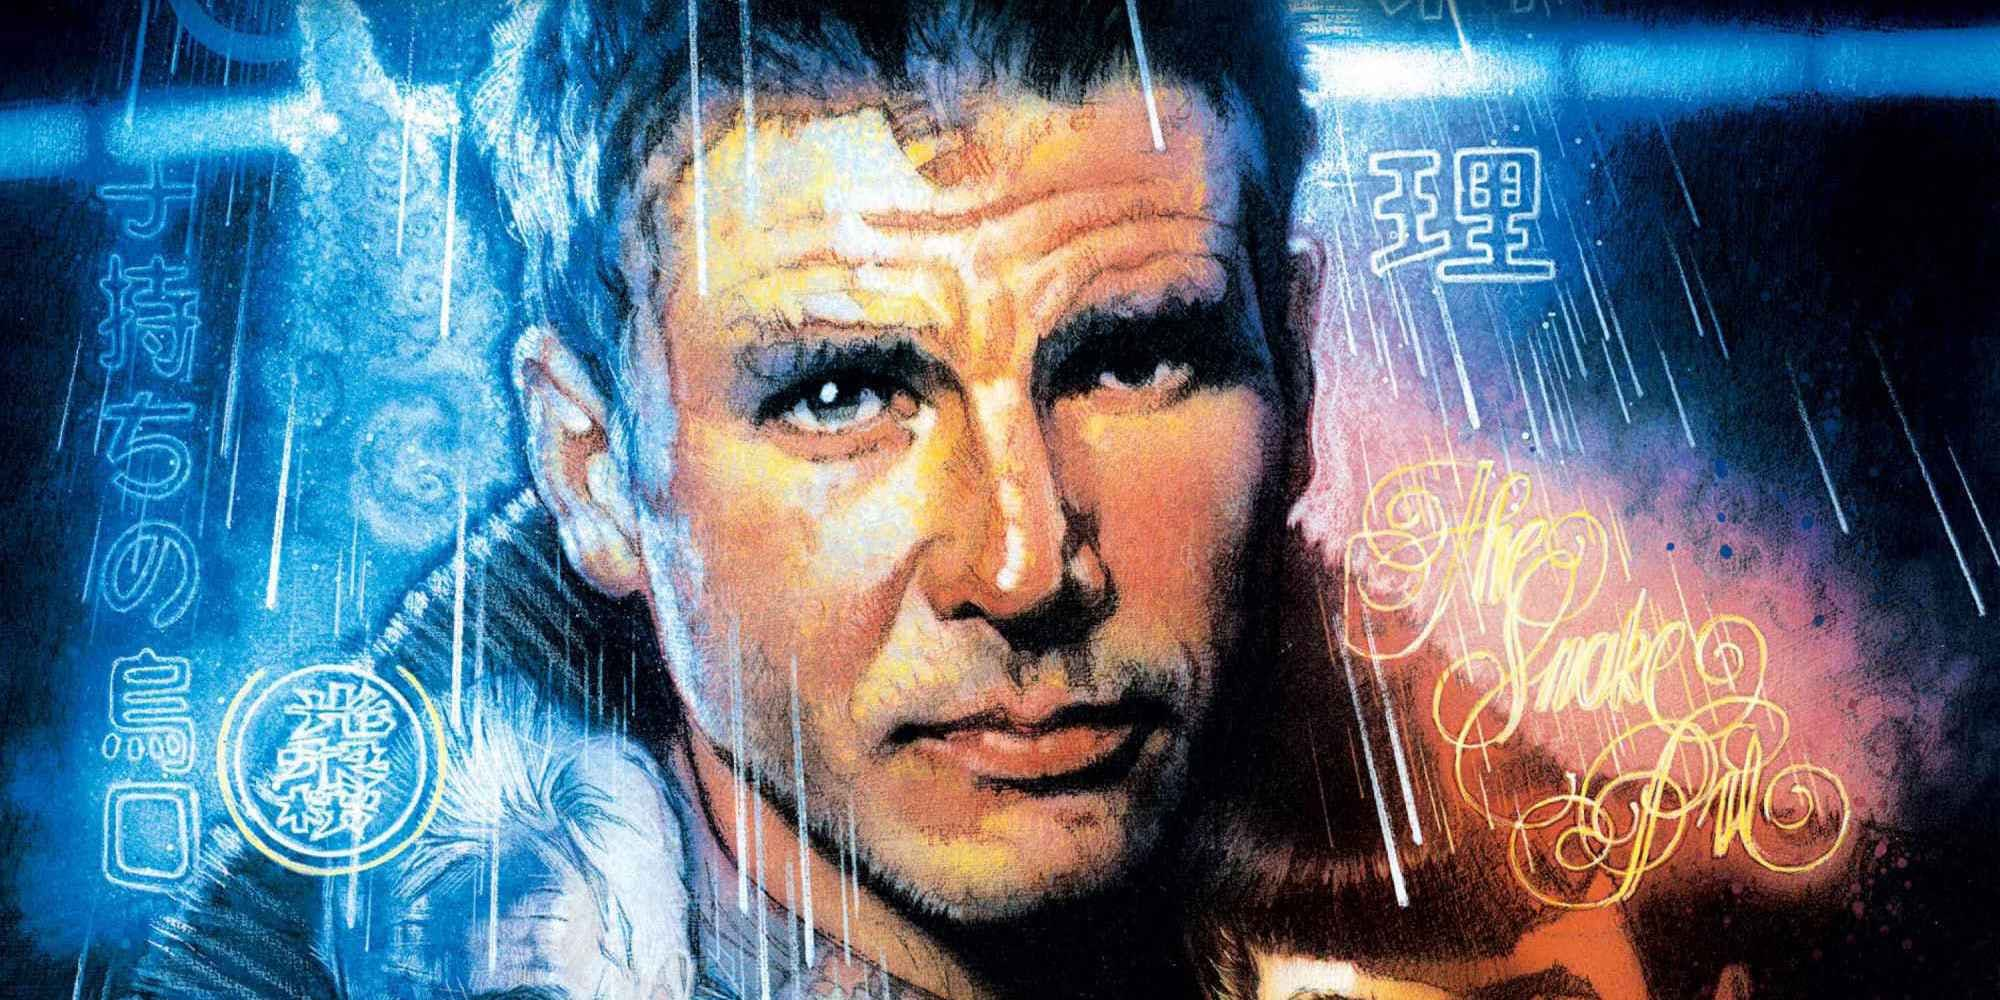 Which Version of Blade Runner Should I Watch?